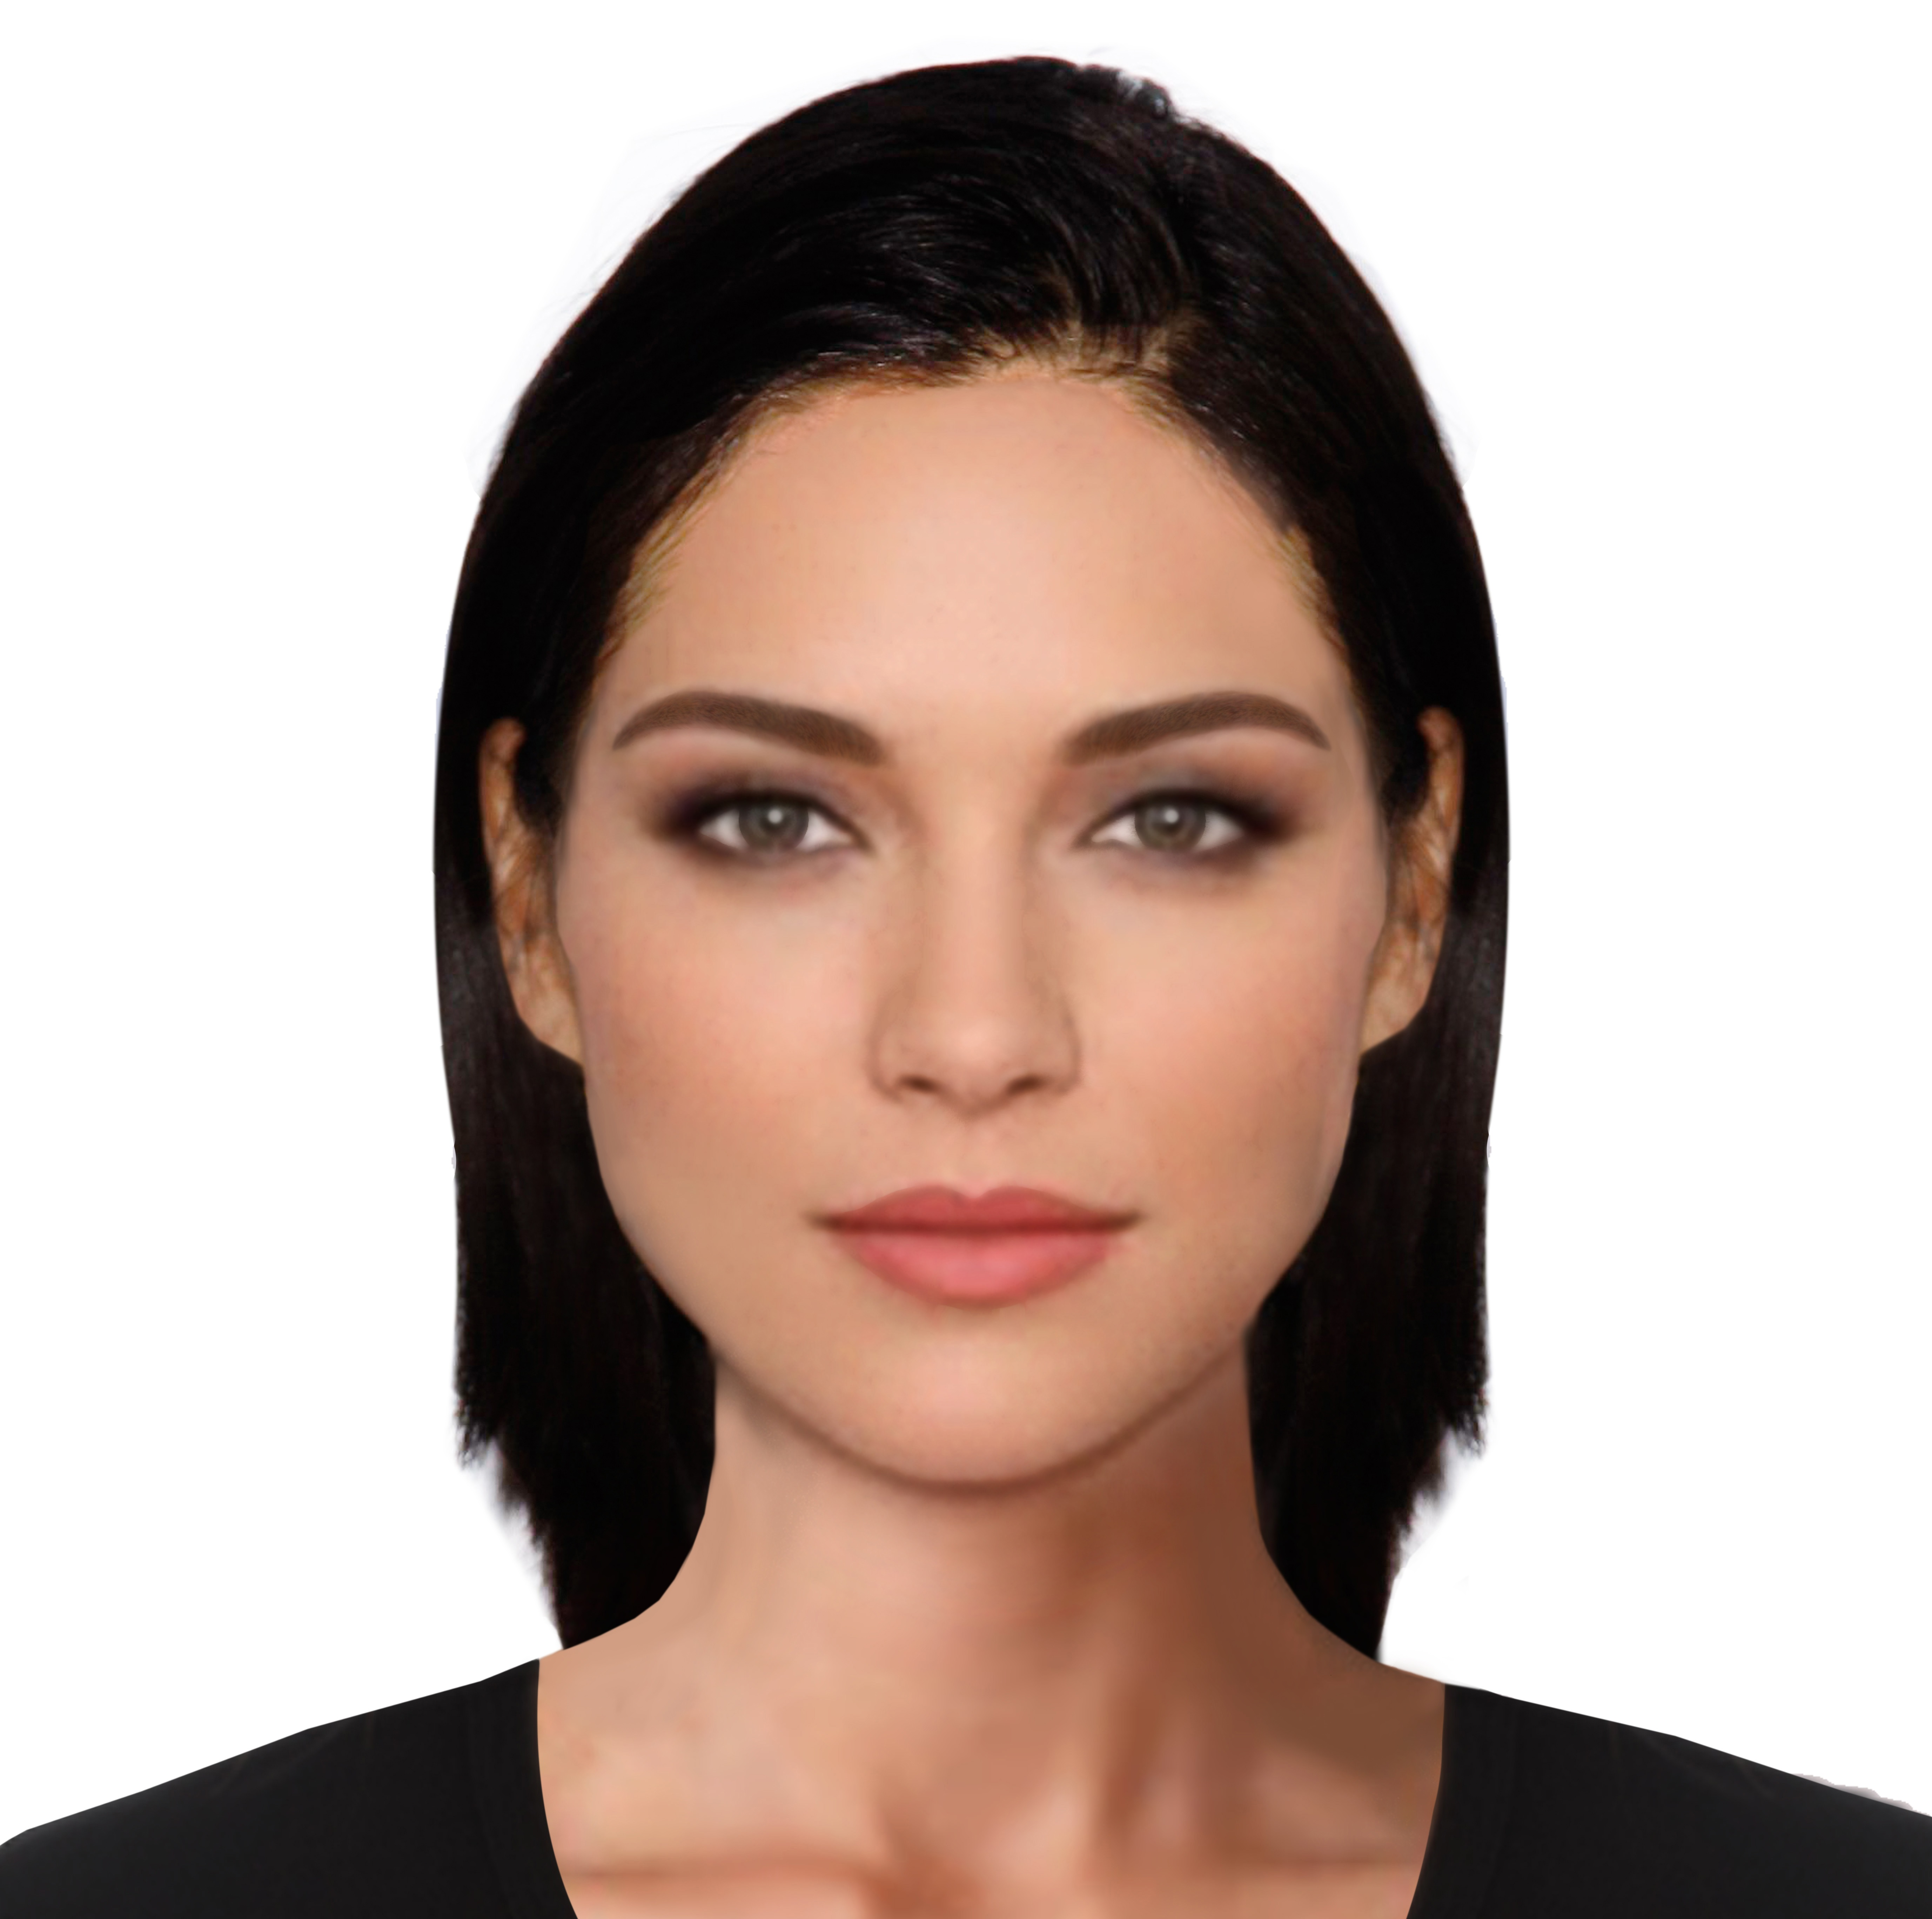 Female Face in a Game Simulator